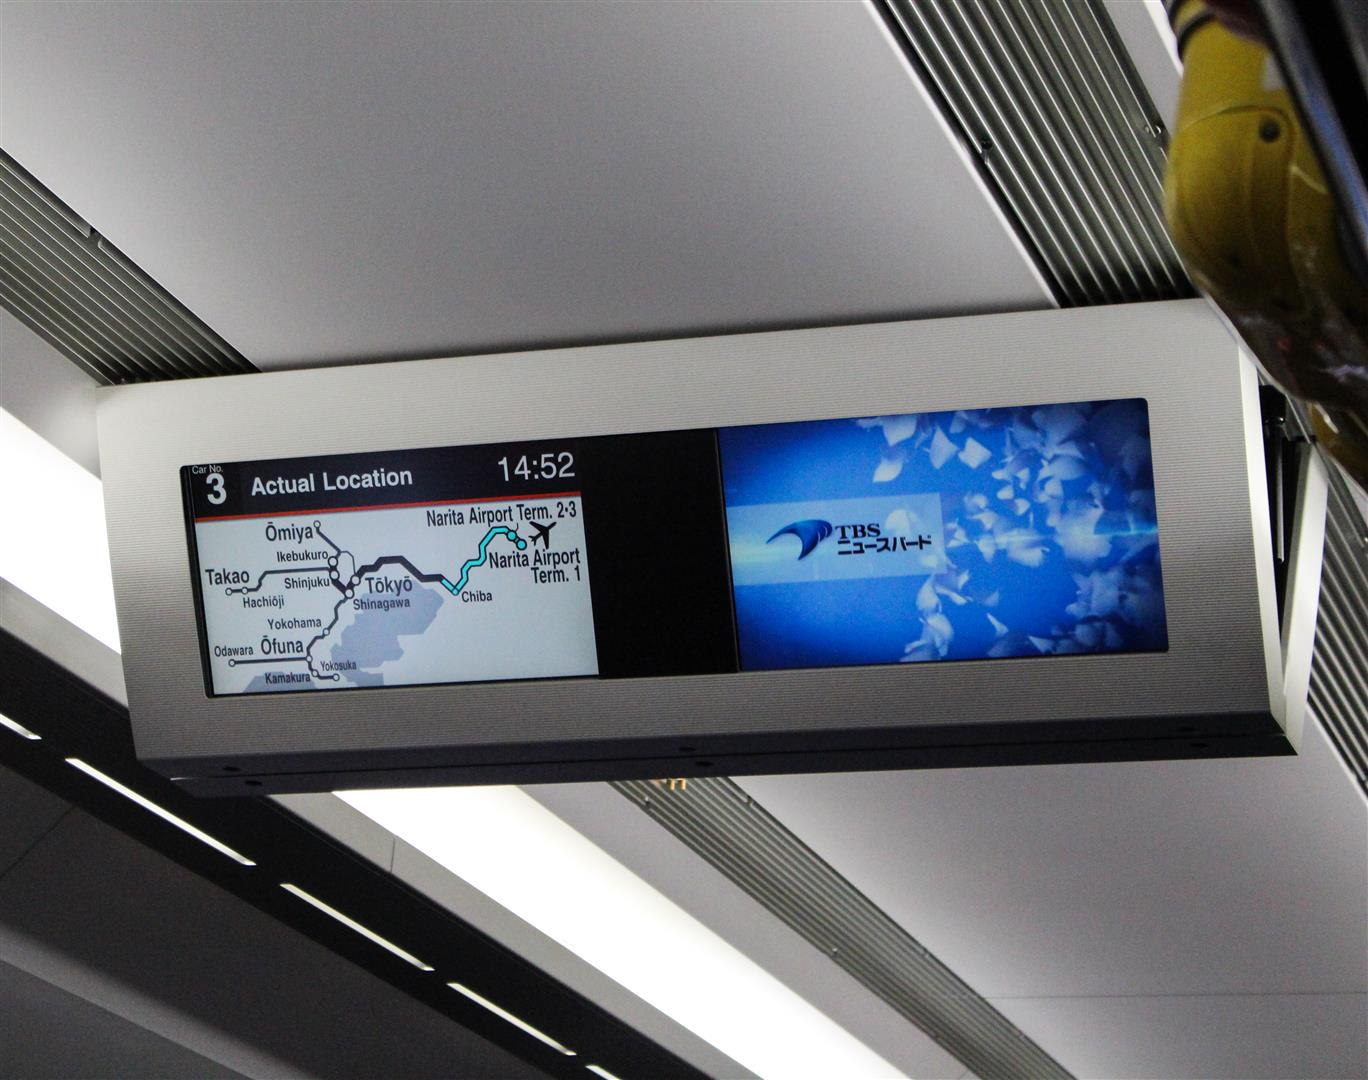 It takes about 1-1.5 hours to get to Shinjuku. Perfect for those long layovers!